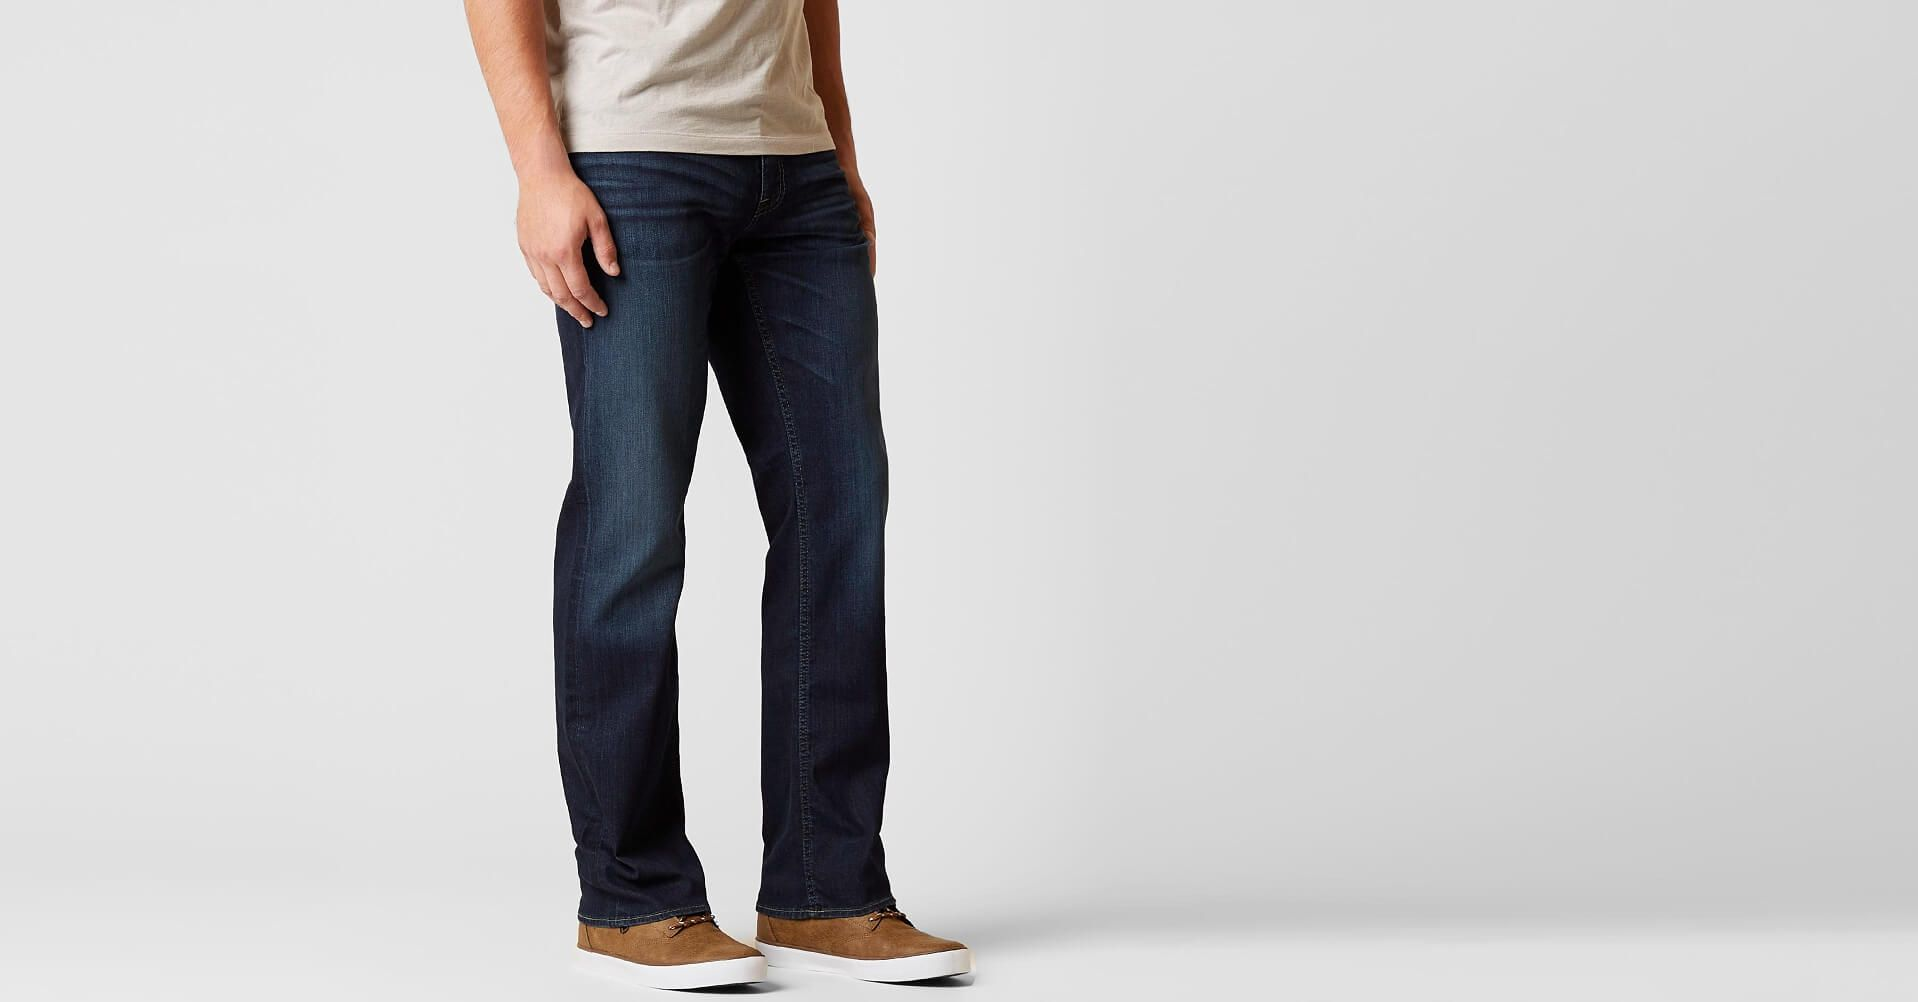 0ce08be02a3 BKE Jake Boot Stretch Jean - Men's Jeans in Koster | Buckle | @giftryapp